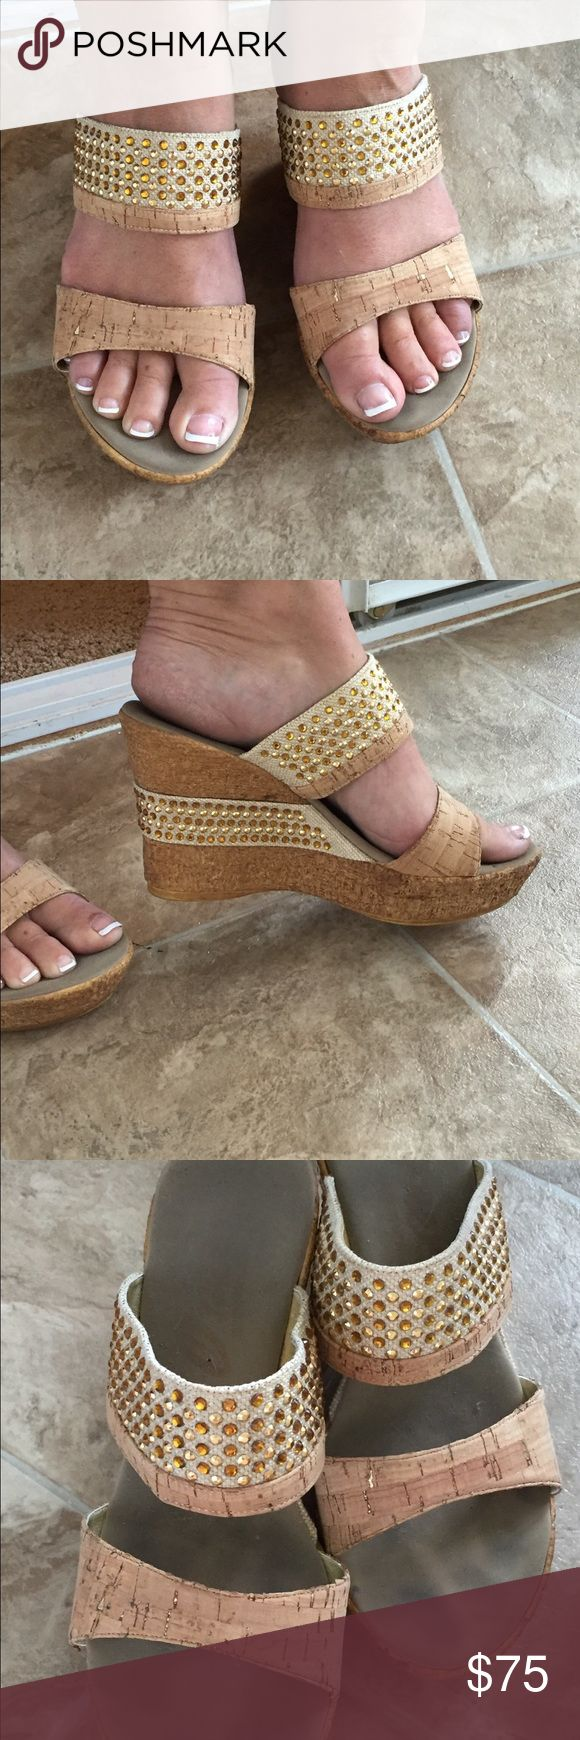 Onex Tan wedges Super cute tan wedges! In good condition but have been worn. Onex Shoes Wedges